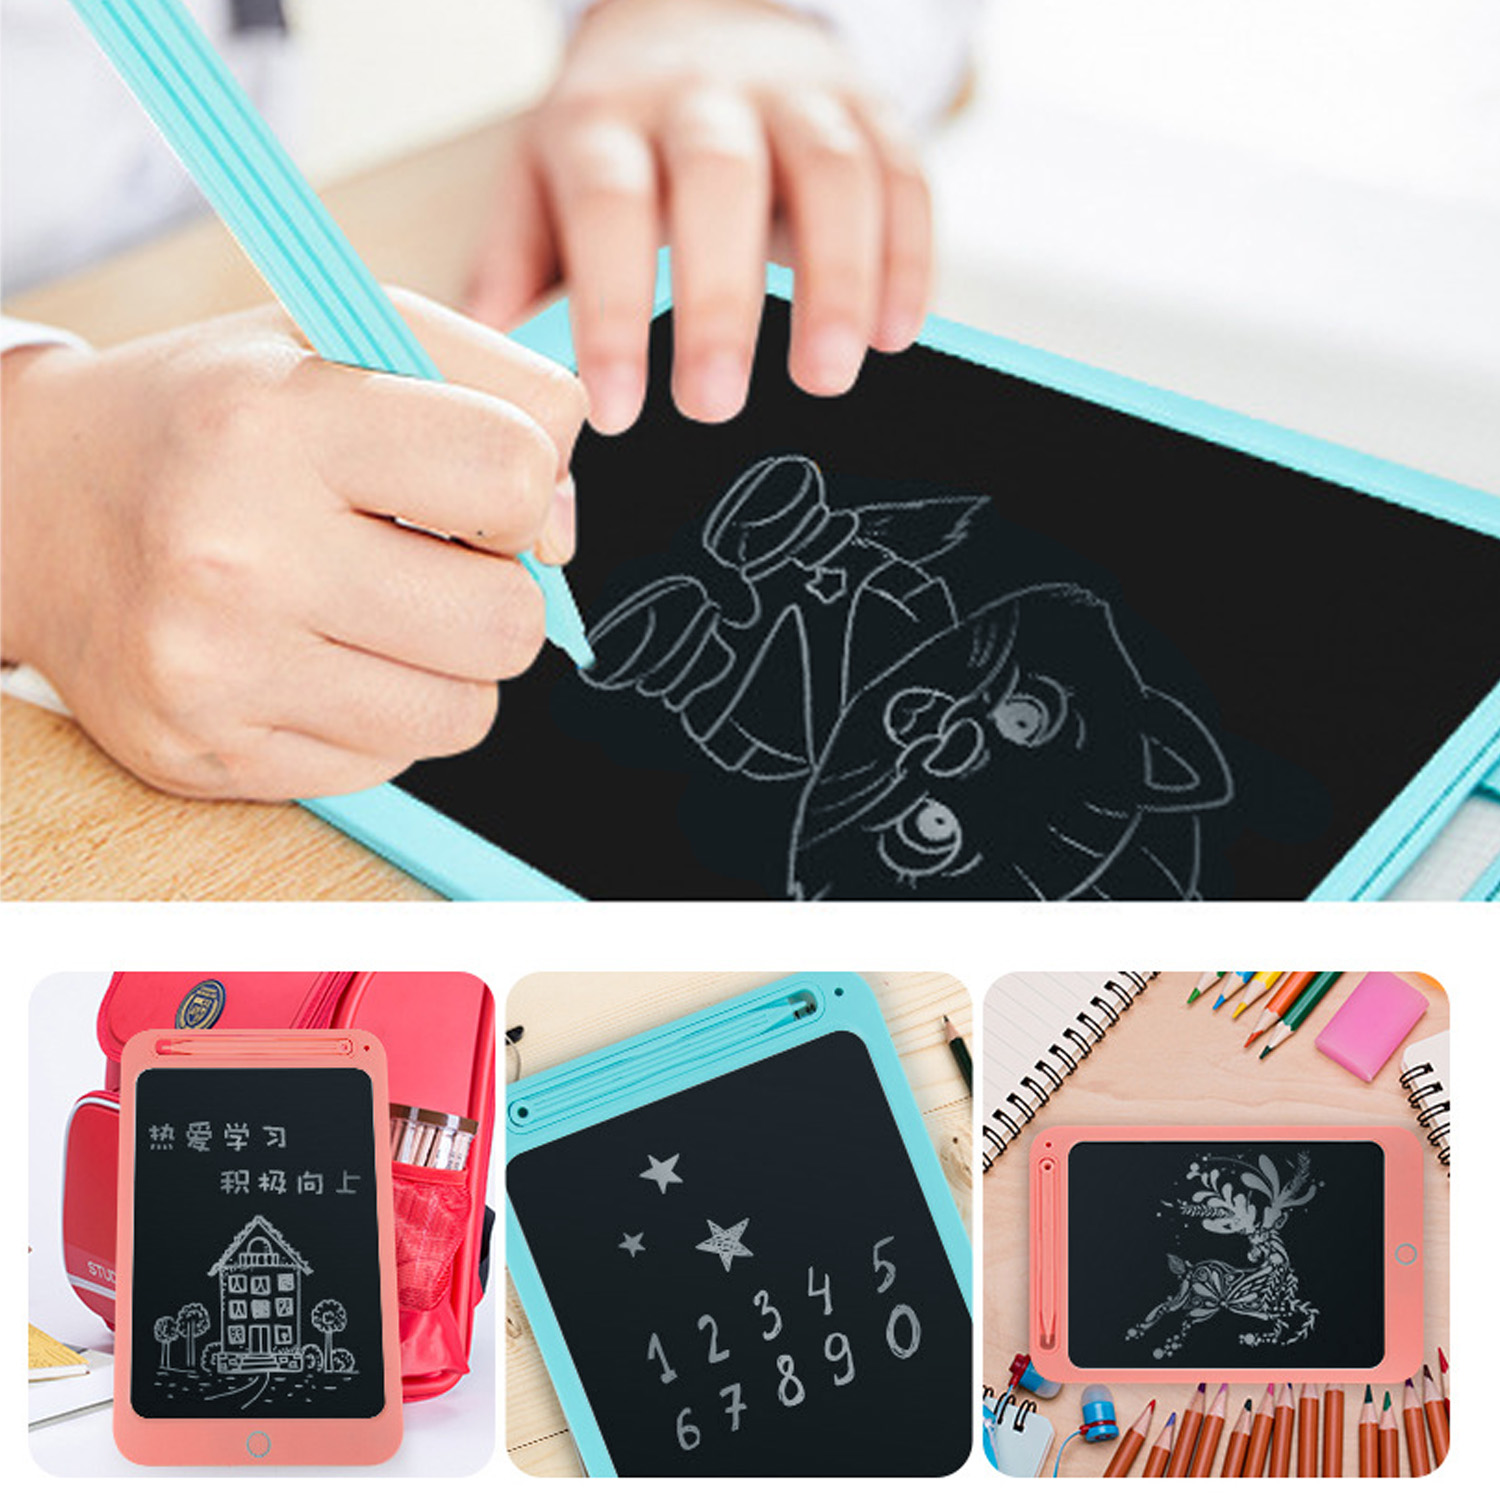 10inch LCD Screen Electronic Writing Drawing Tablet Board With Anti-Erase Lock For Children Kids Birthday Christmas Gift